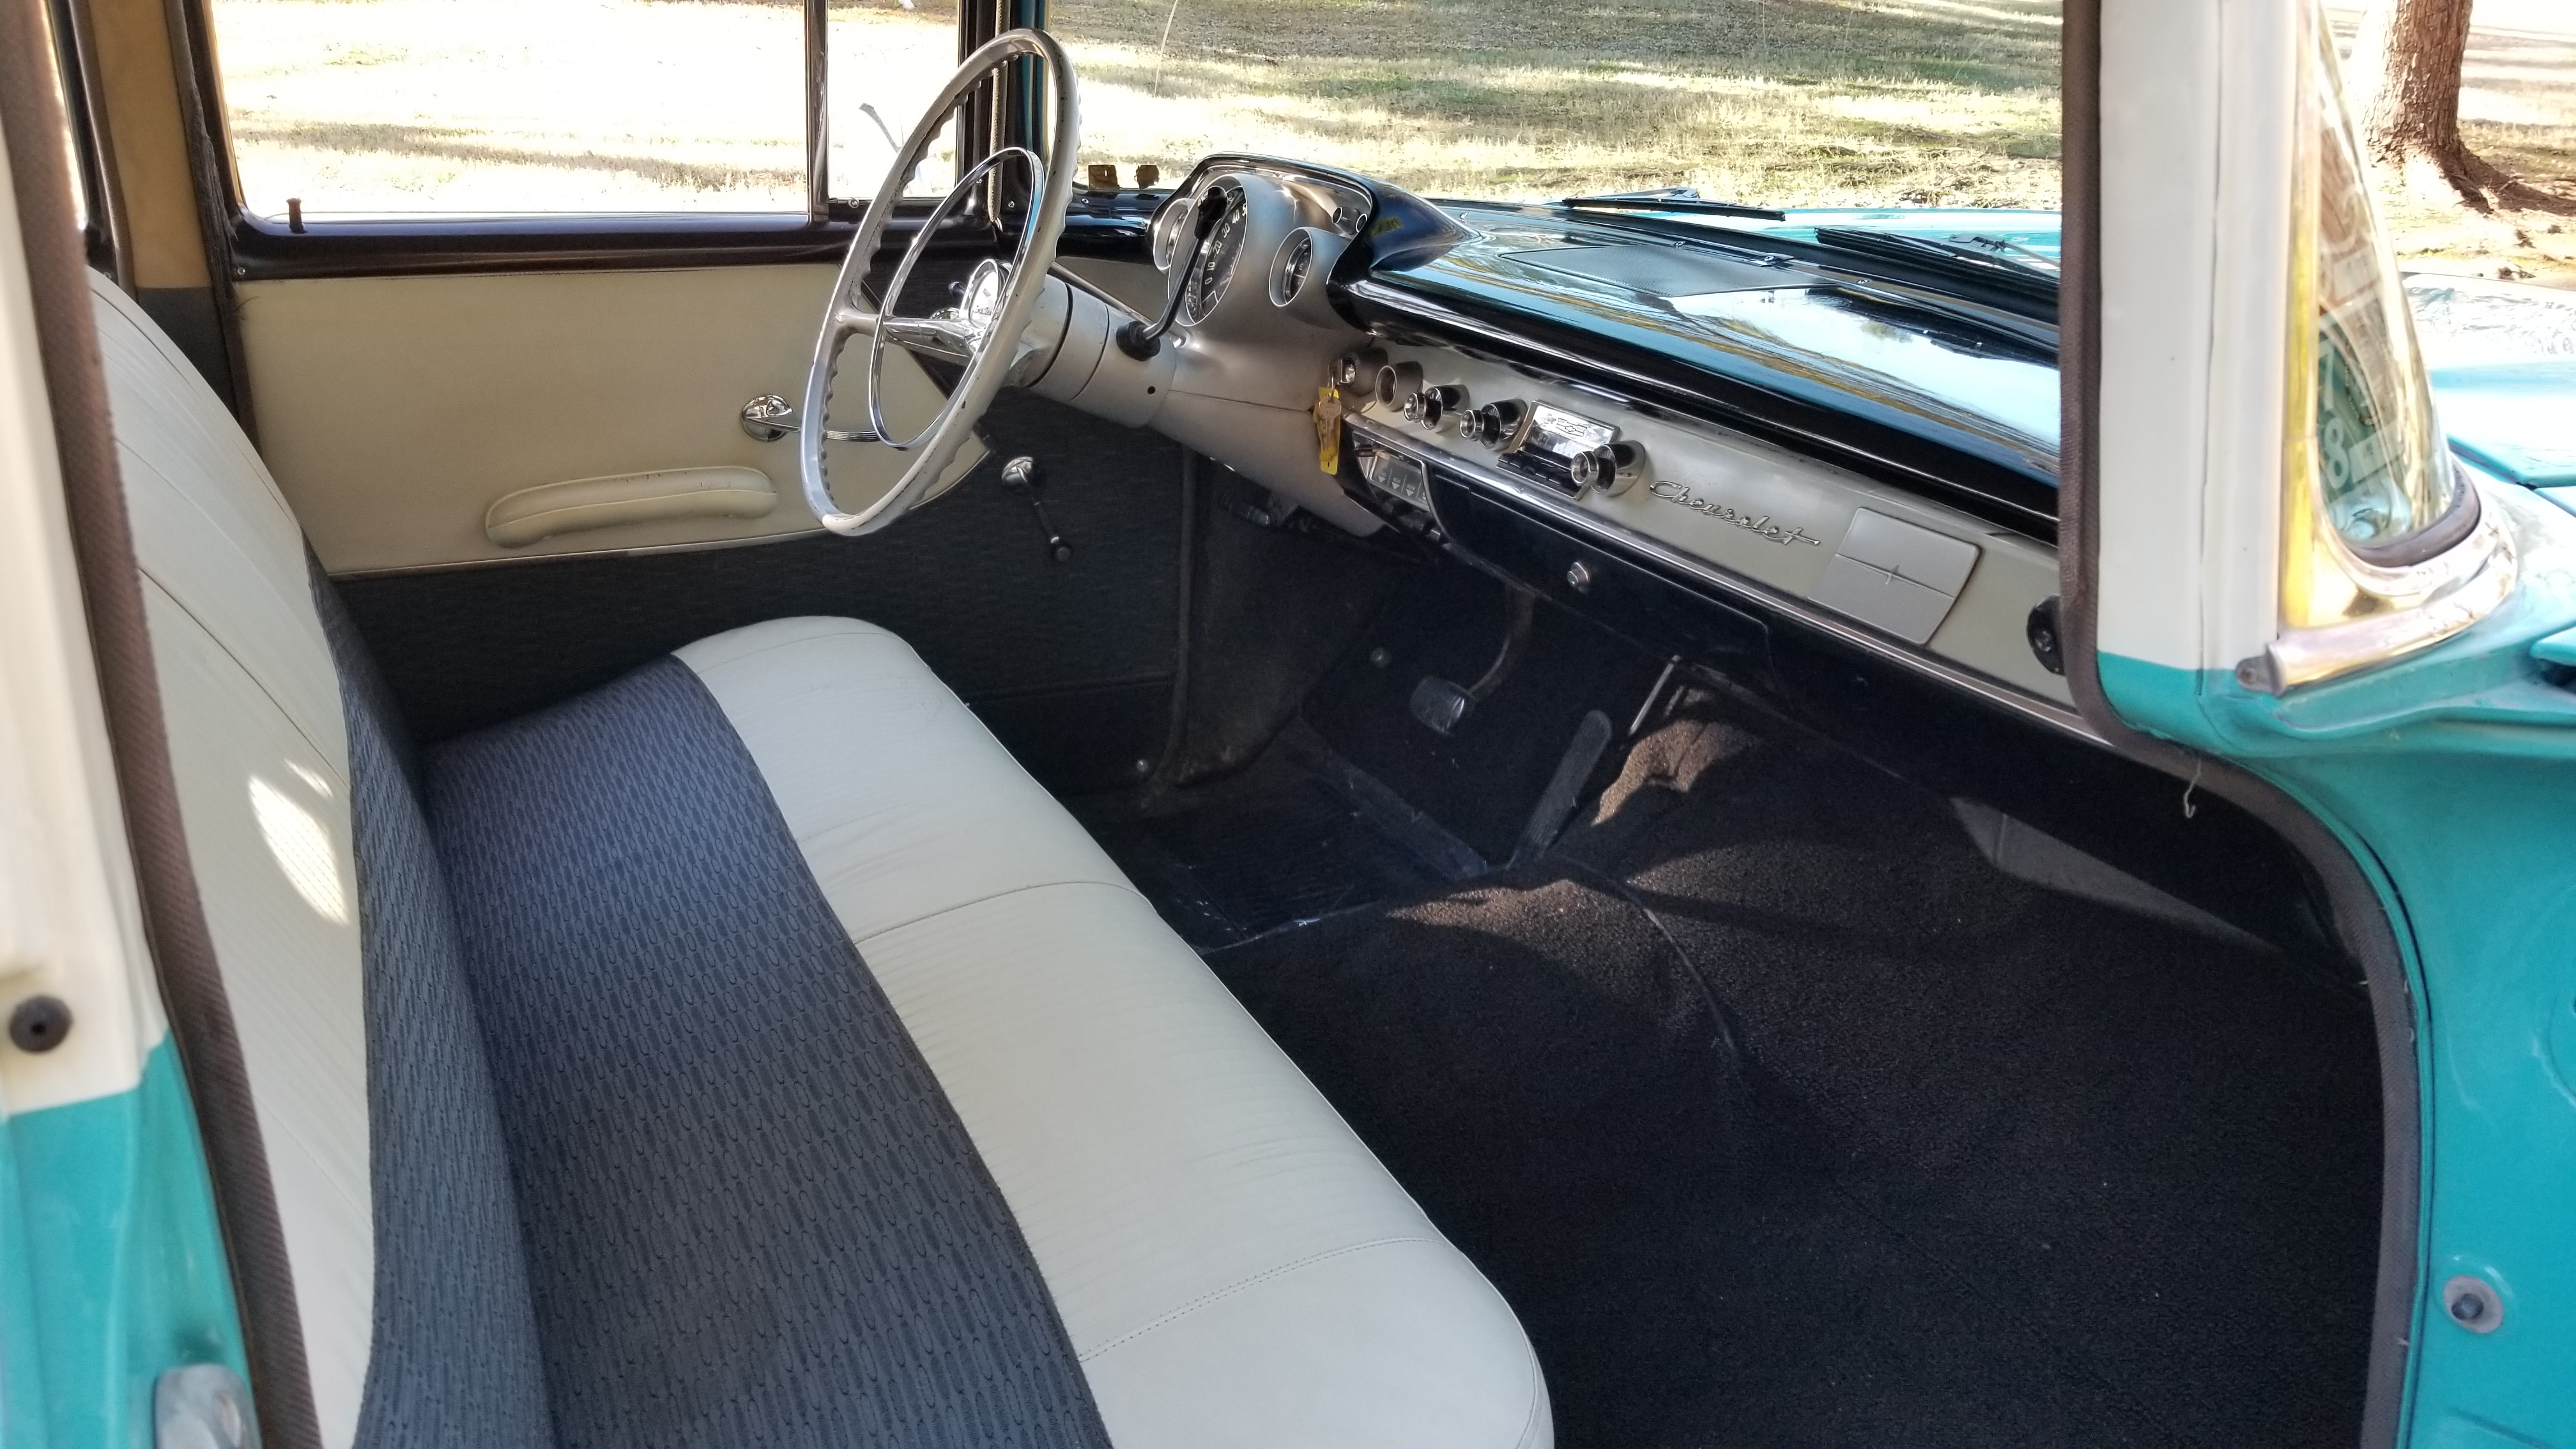 1957 Chevy 210 4 Door (26)